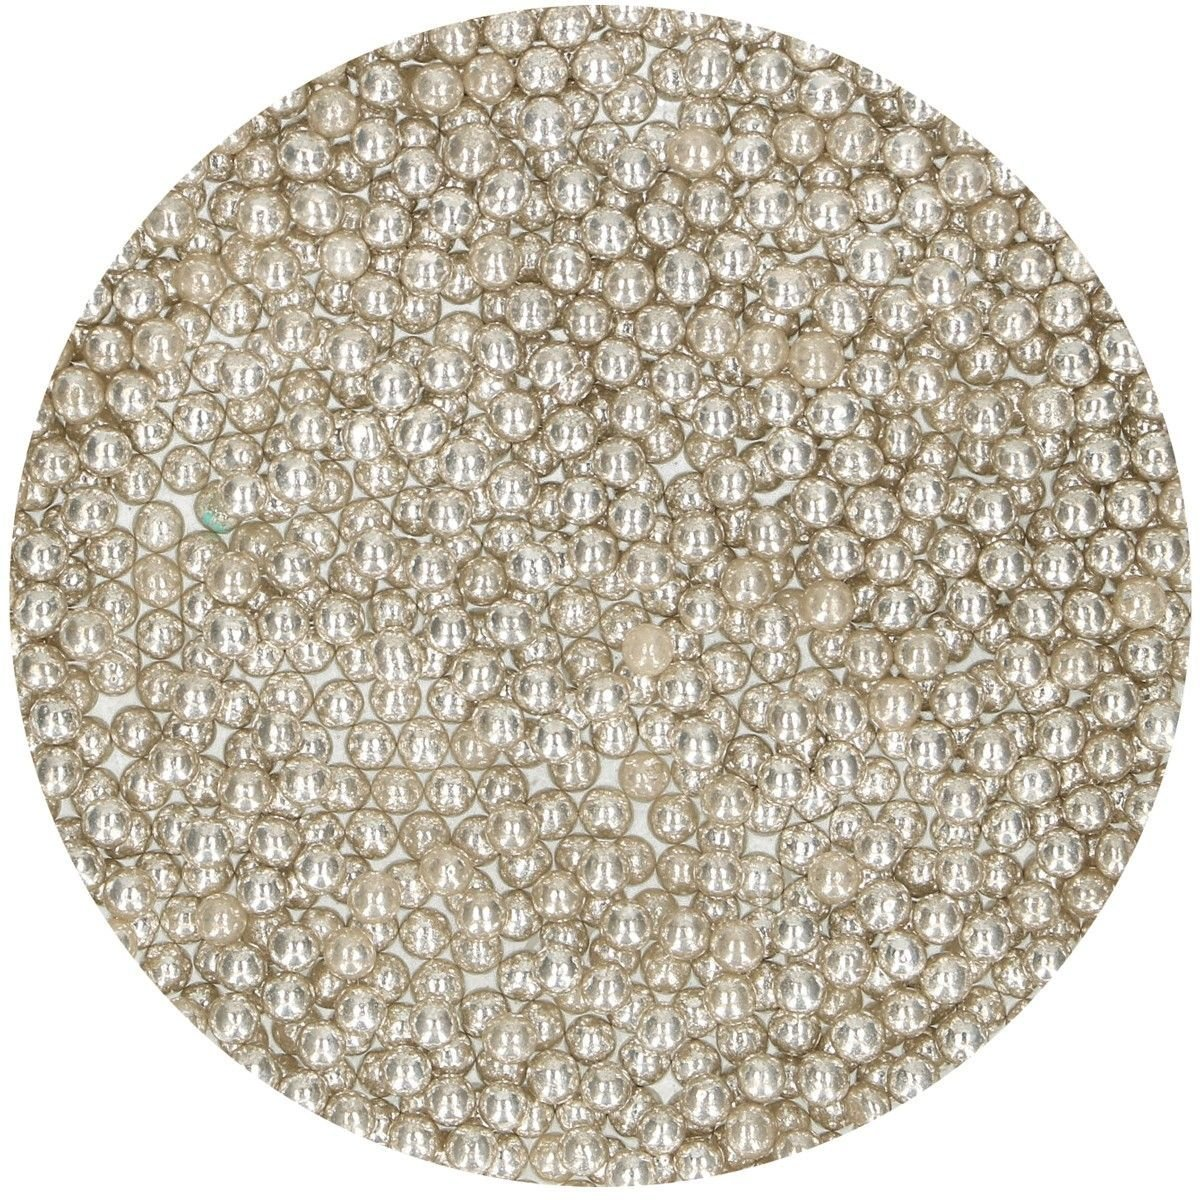 FunCakes Sugarballs -4mm METALLIC SILVER 80g Μπιλίτσες Ασημί